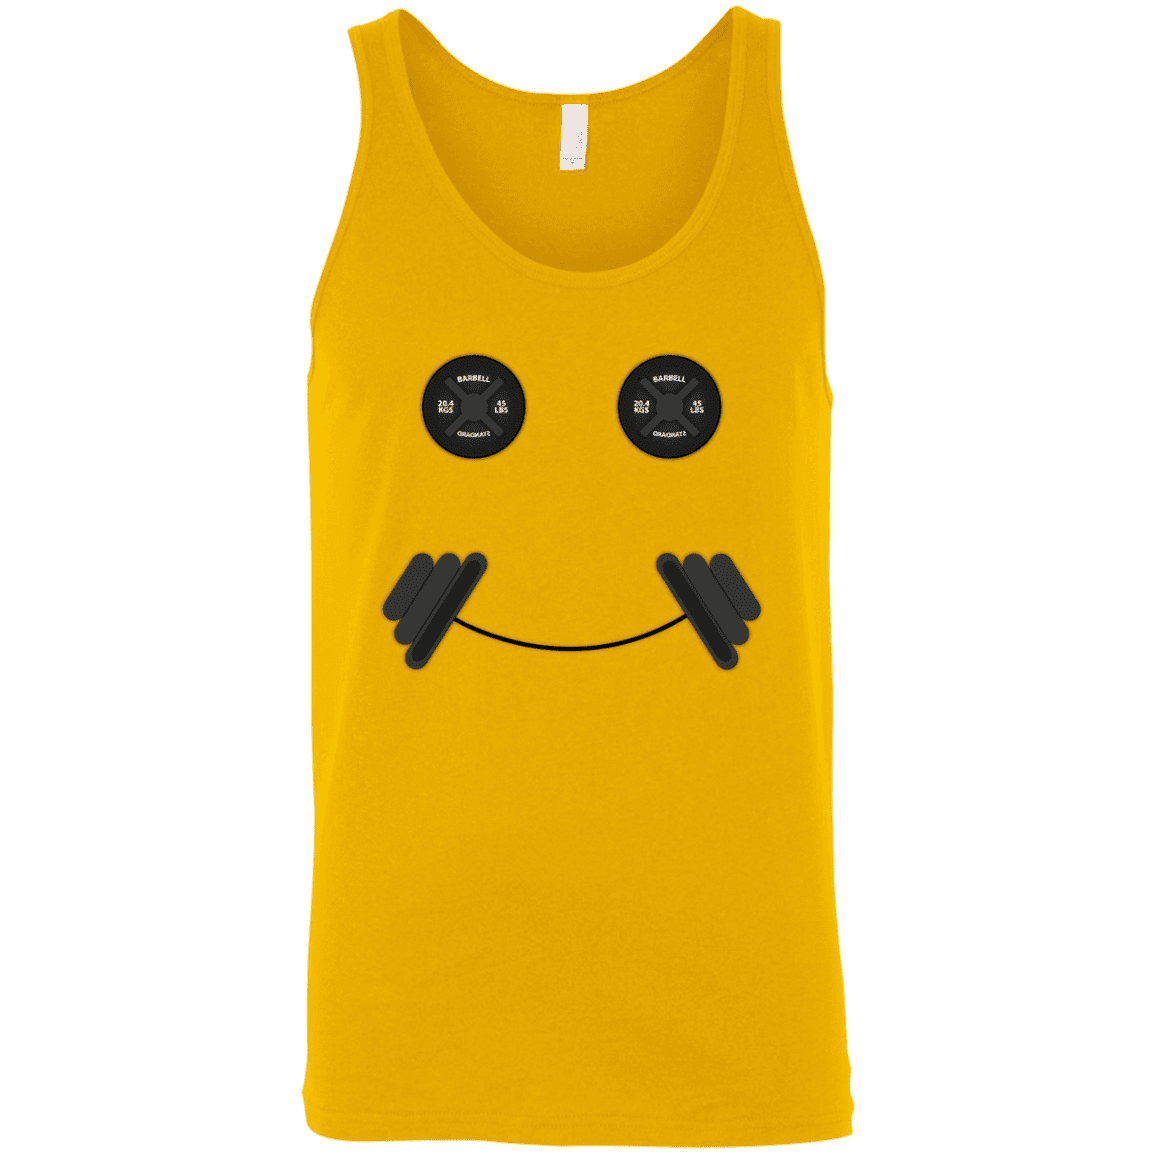 T-Shirts Gold / X-Small Iron Smiley Tank Top